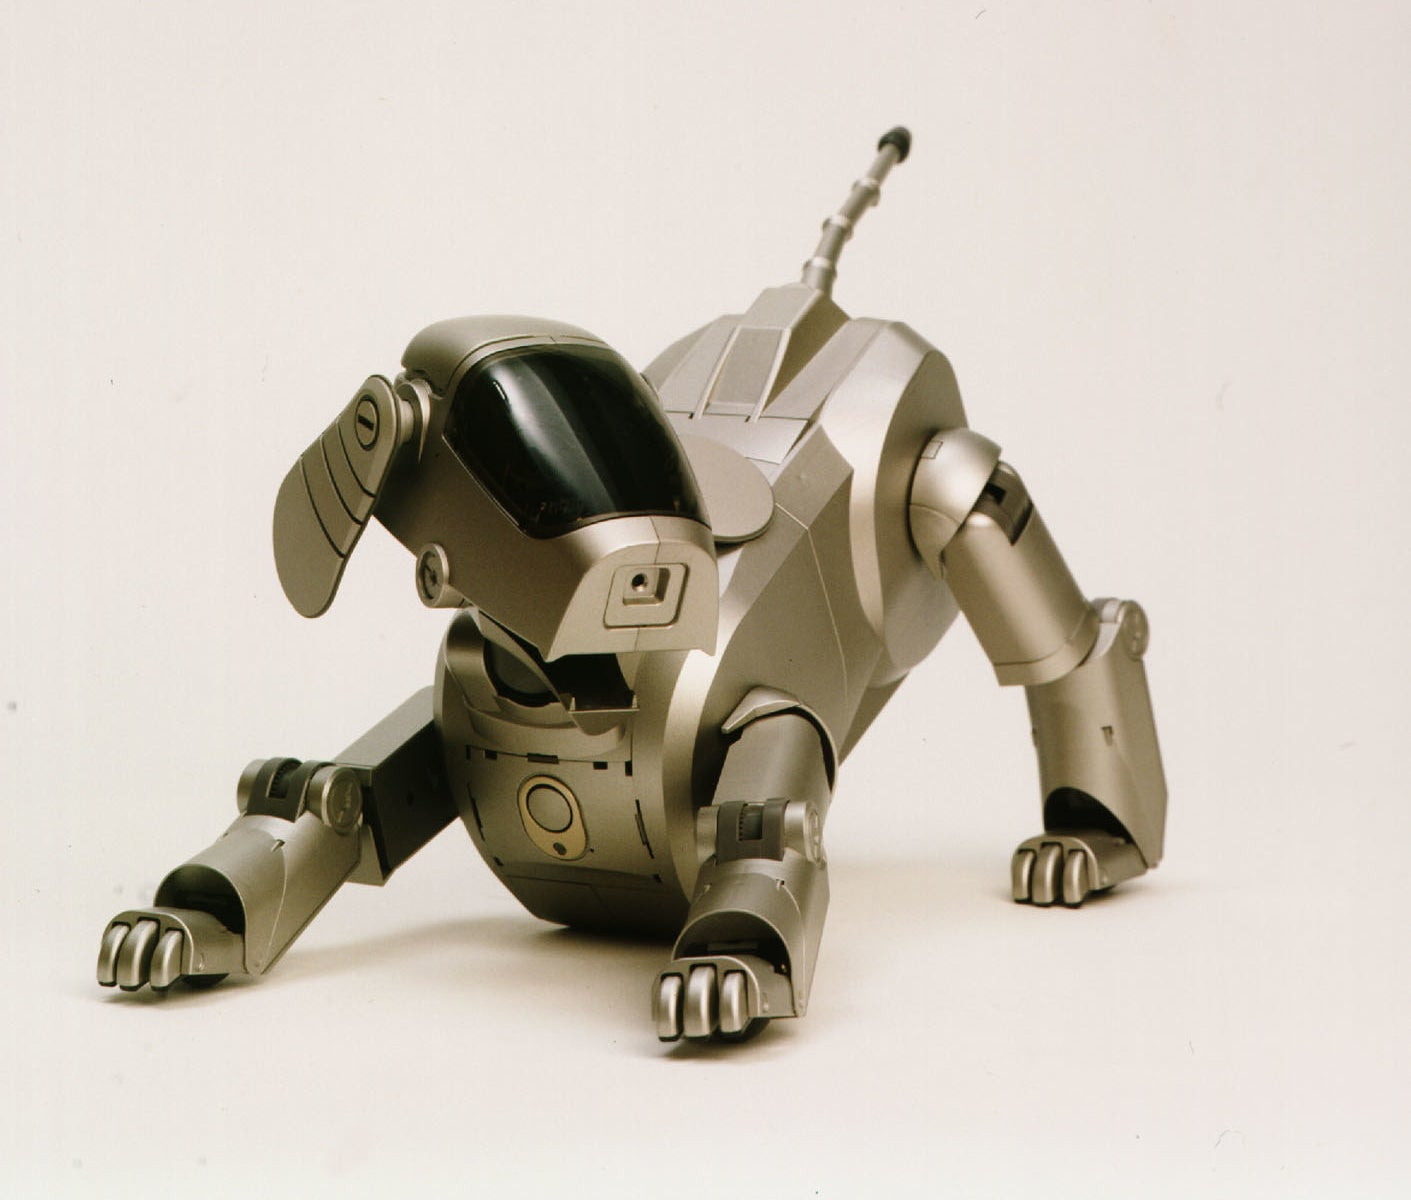 Product shot of a robot dog